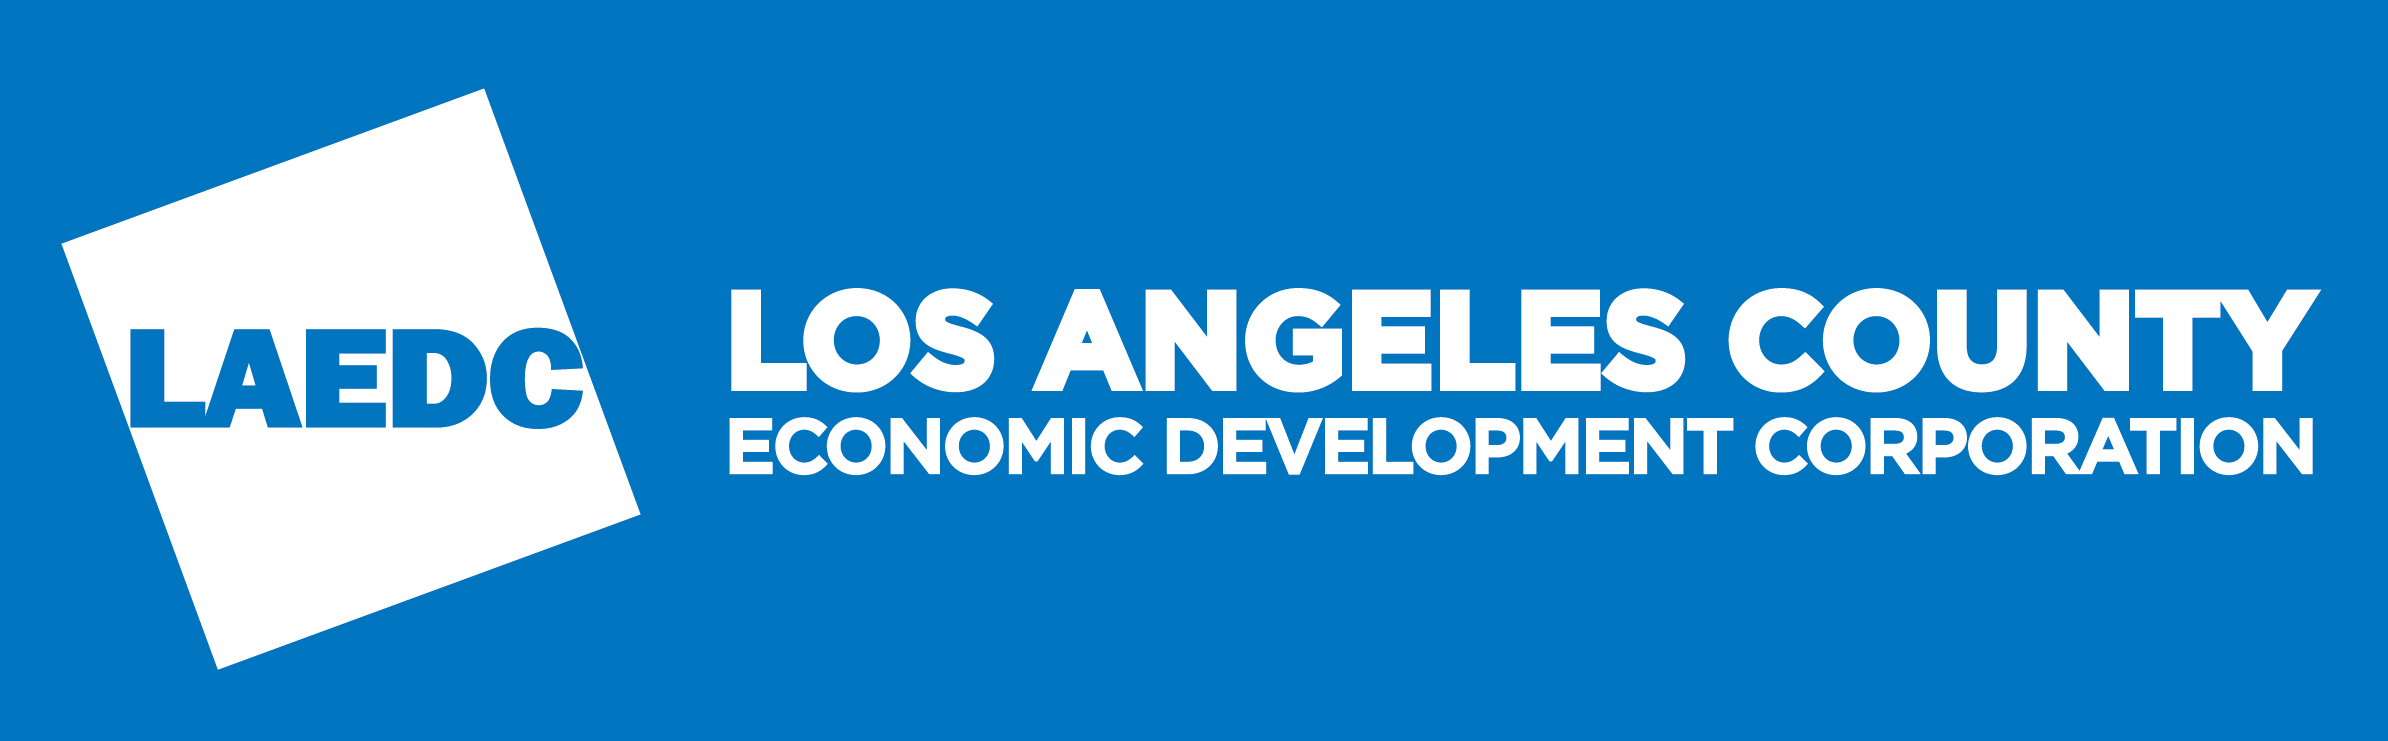 laedc_logo_blue_long